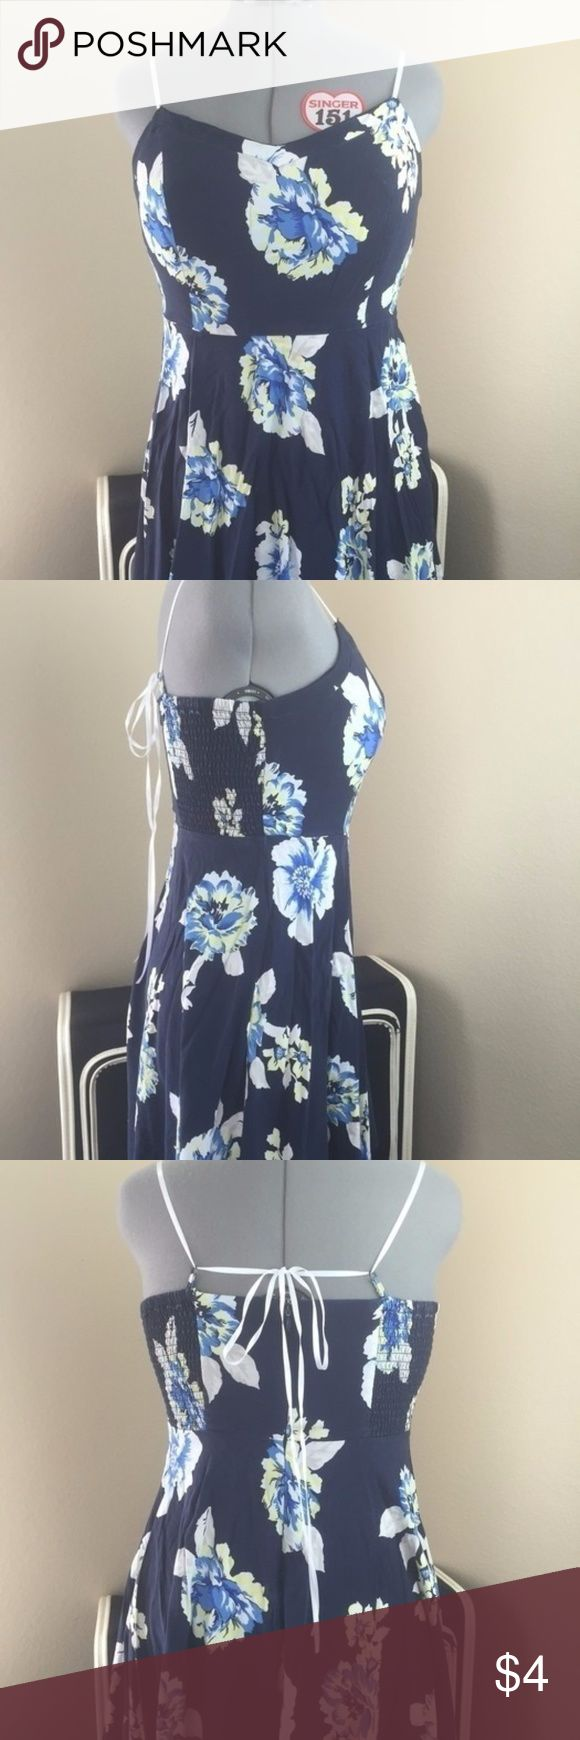 Blue and white floral skater dress Blue and white floral skater dress from Old Navy. Original straps broke so I replaced them with some cute white ribbon. Dress was worn and washed a few times but is still in good, wearable condition. Tags were removed but best fits a size 10. Old Navy Dresses Midi